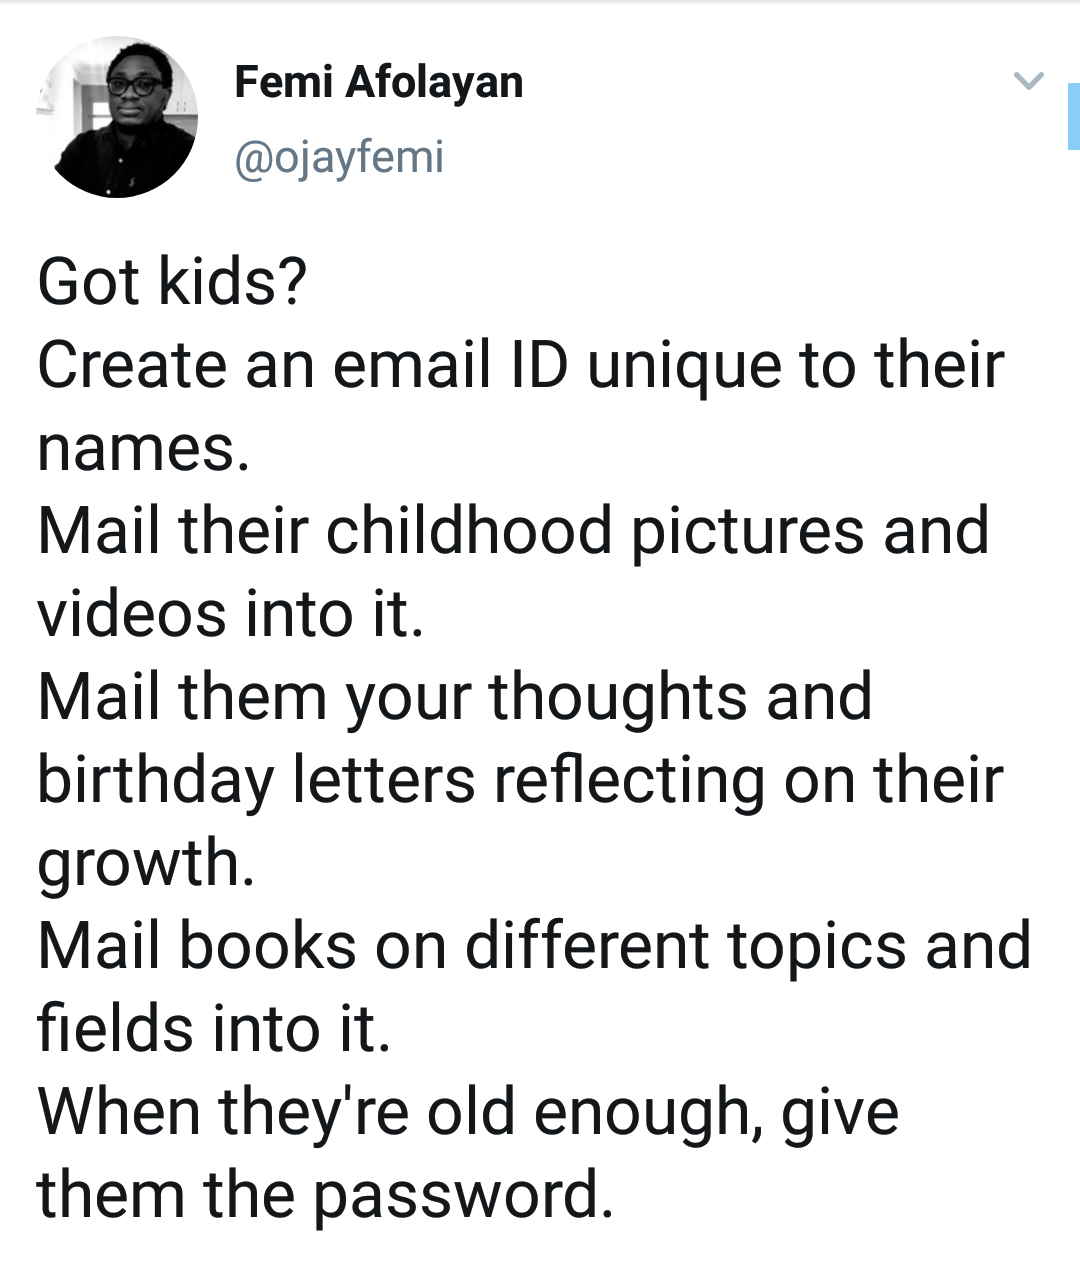 black wholesome-memes black text: Femi Afolayan @ojayfemi Got kids? Create an email ID unique to their names. Mail their childhood pictures and videos into it. Mail them your thoughts and birthday letters reflecting on their growth. Mail books on different topics and fields into it. When they're old enough, give them the password.